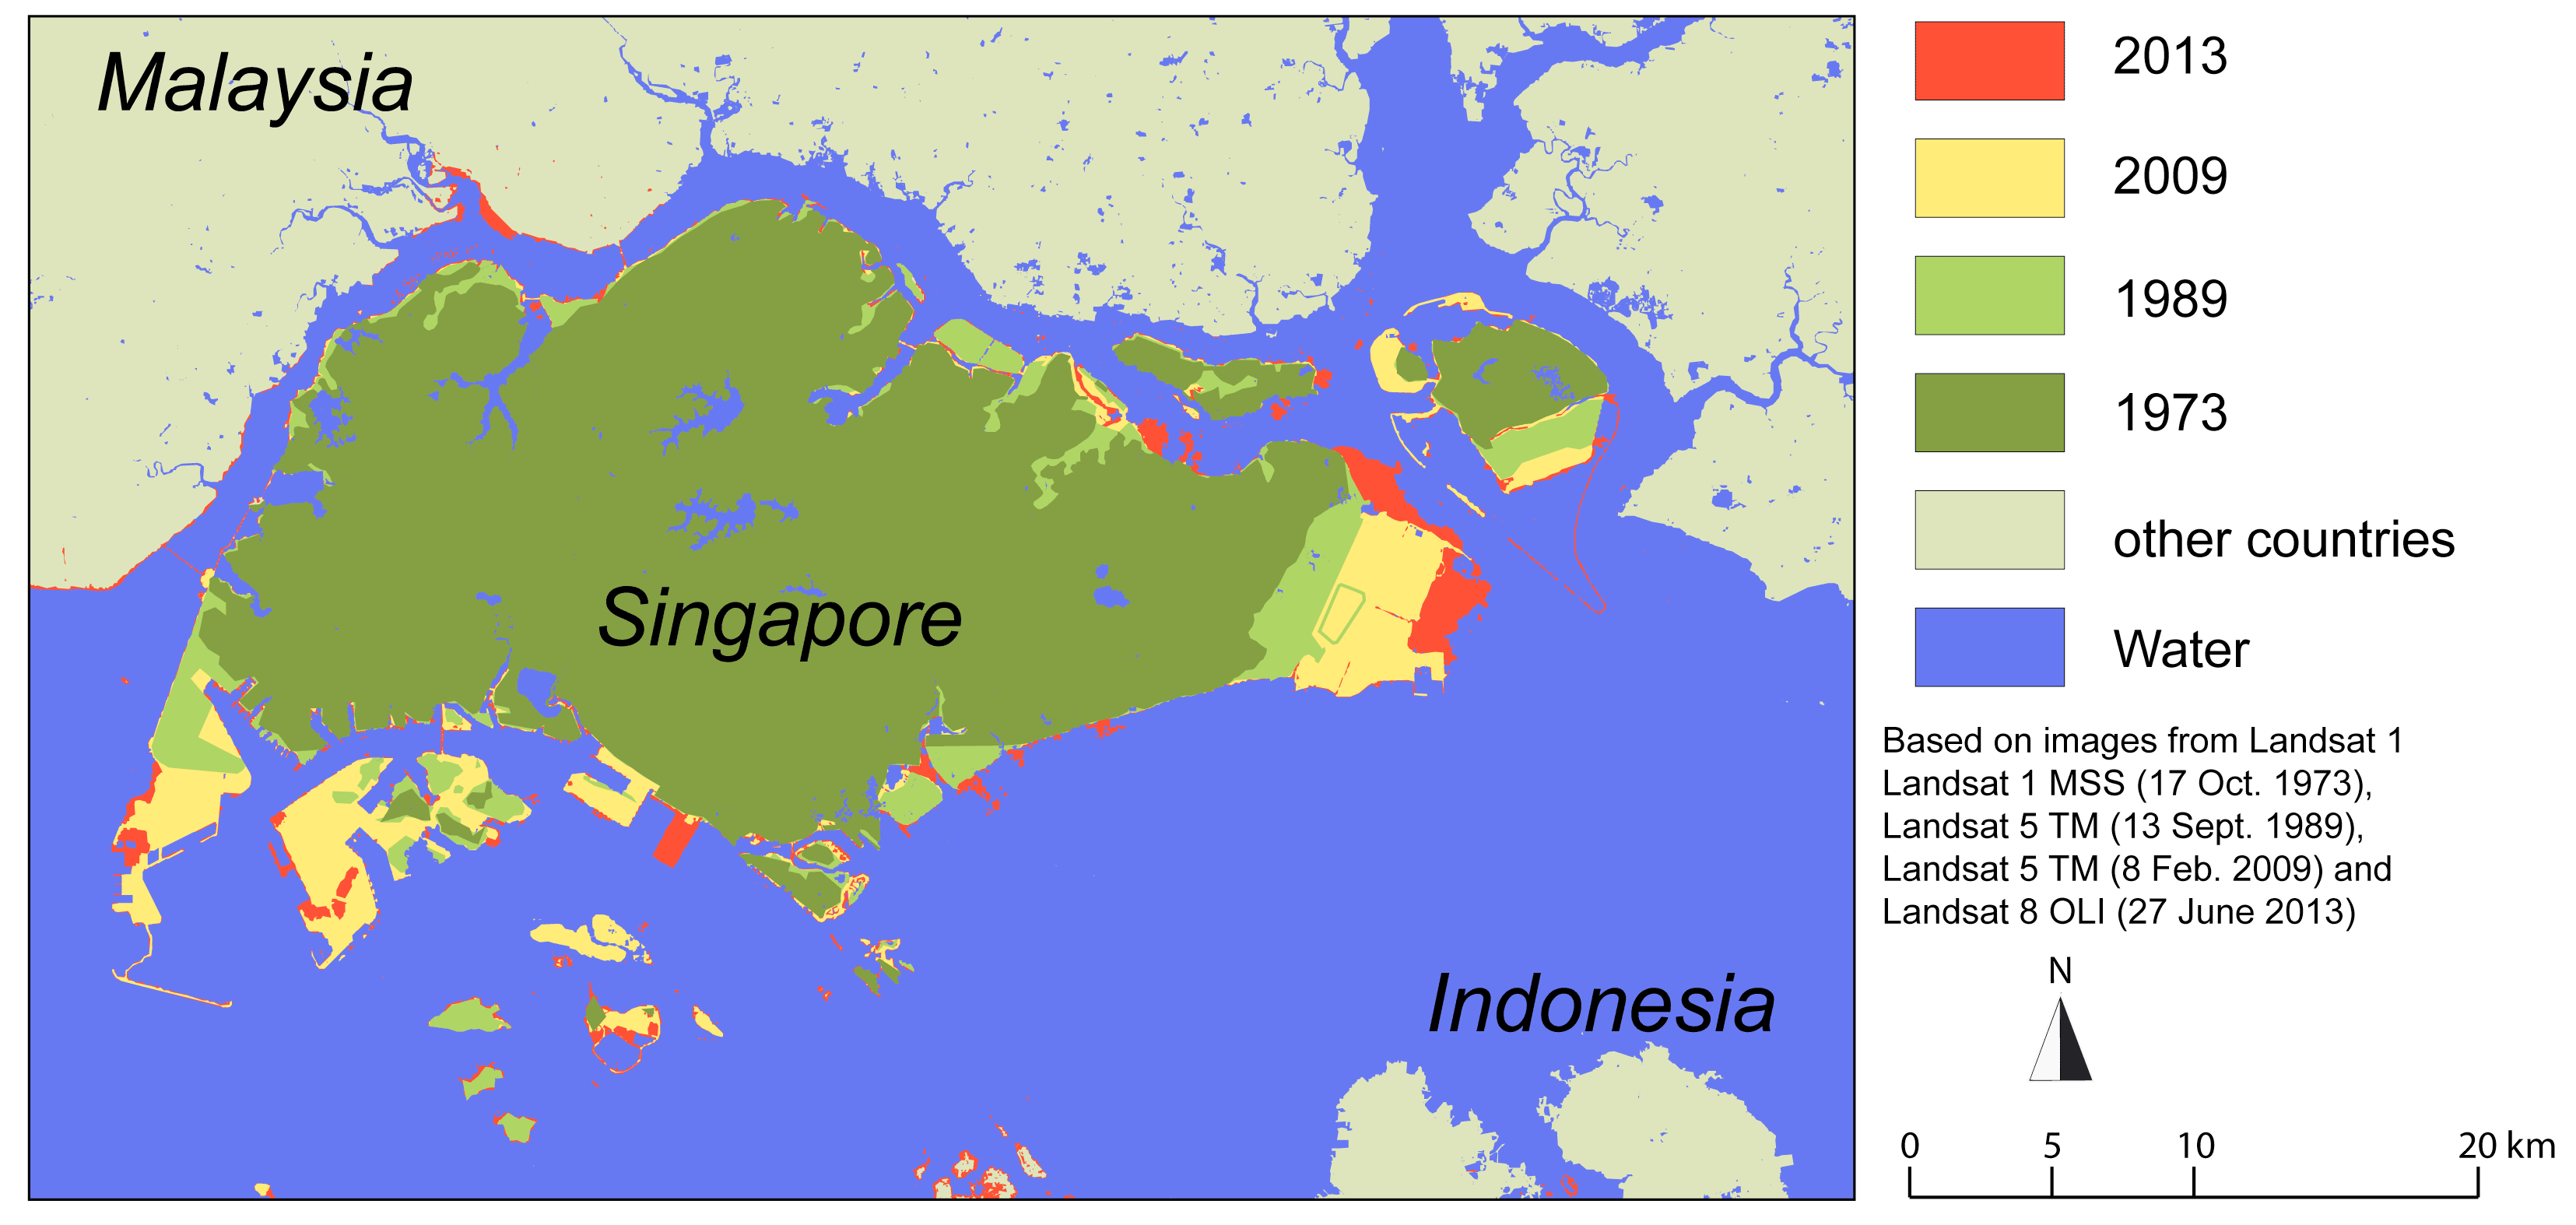 UNEP / carte de l'expansion de Singapour